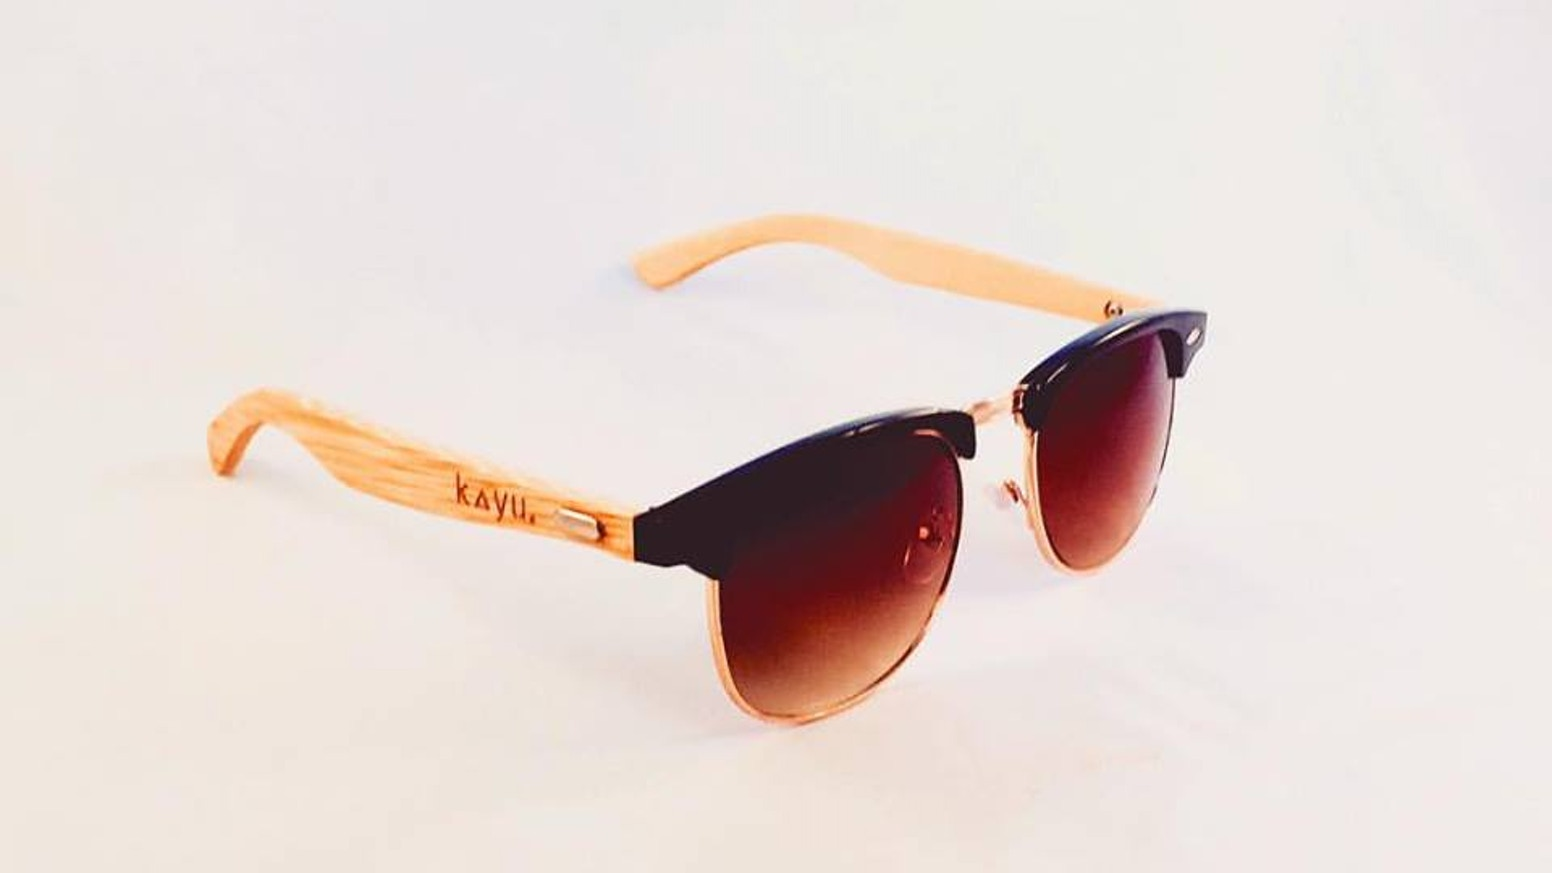 db4b5d2c43160 Kayu  Sol  Bamboo Polarised Clubmaster Style Sunglasses by Mat ...